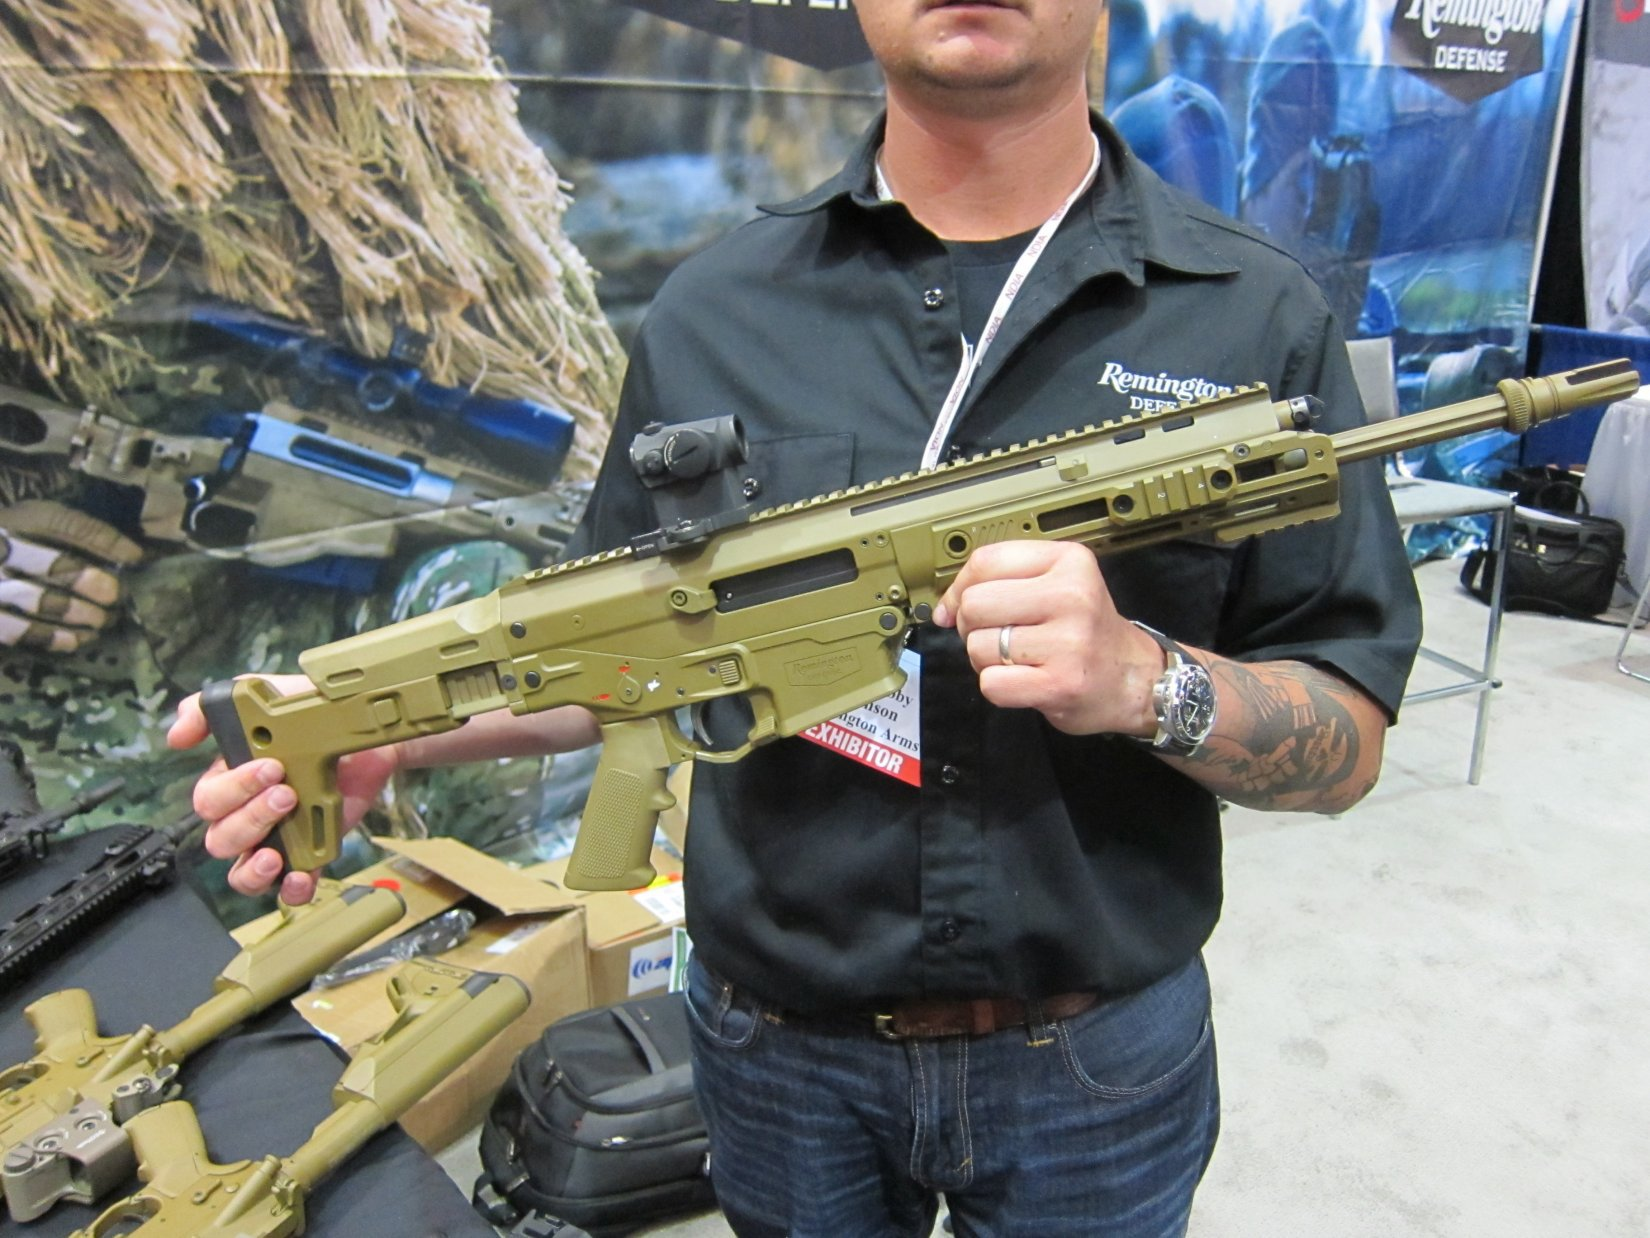 Remington ACR Individual Carbine IC Candidate Robby Johnson NDIA Joint Armaments 2012 DefenseReview.com DR 1 Remington ACR PDW SBR (Adaptive Combat Rifle Personal Defense Weapon Short Barreled Rifle) and Remington Individual Carbine (IC) Candidate: Remington Defense Assault Rifles/Carbines/PDWs at NDIA Joint Armaments Conference 2012 (Video!)